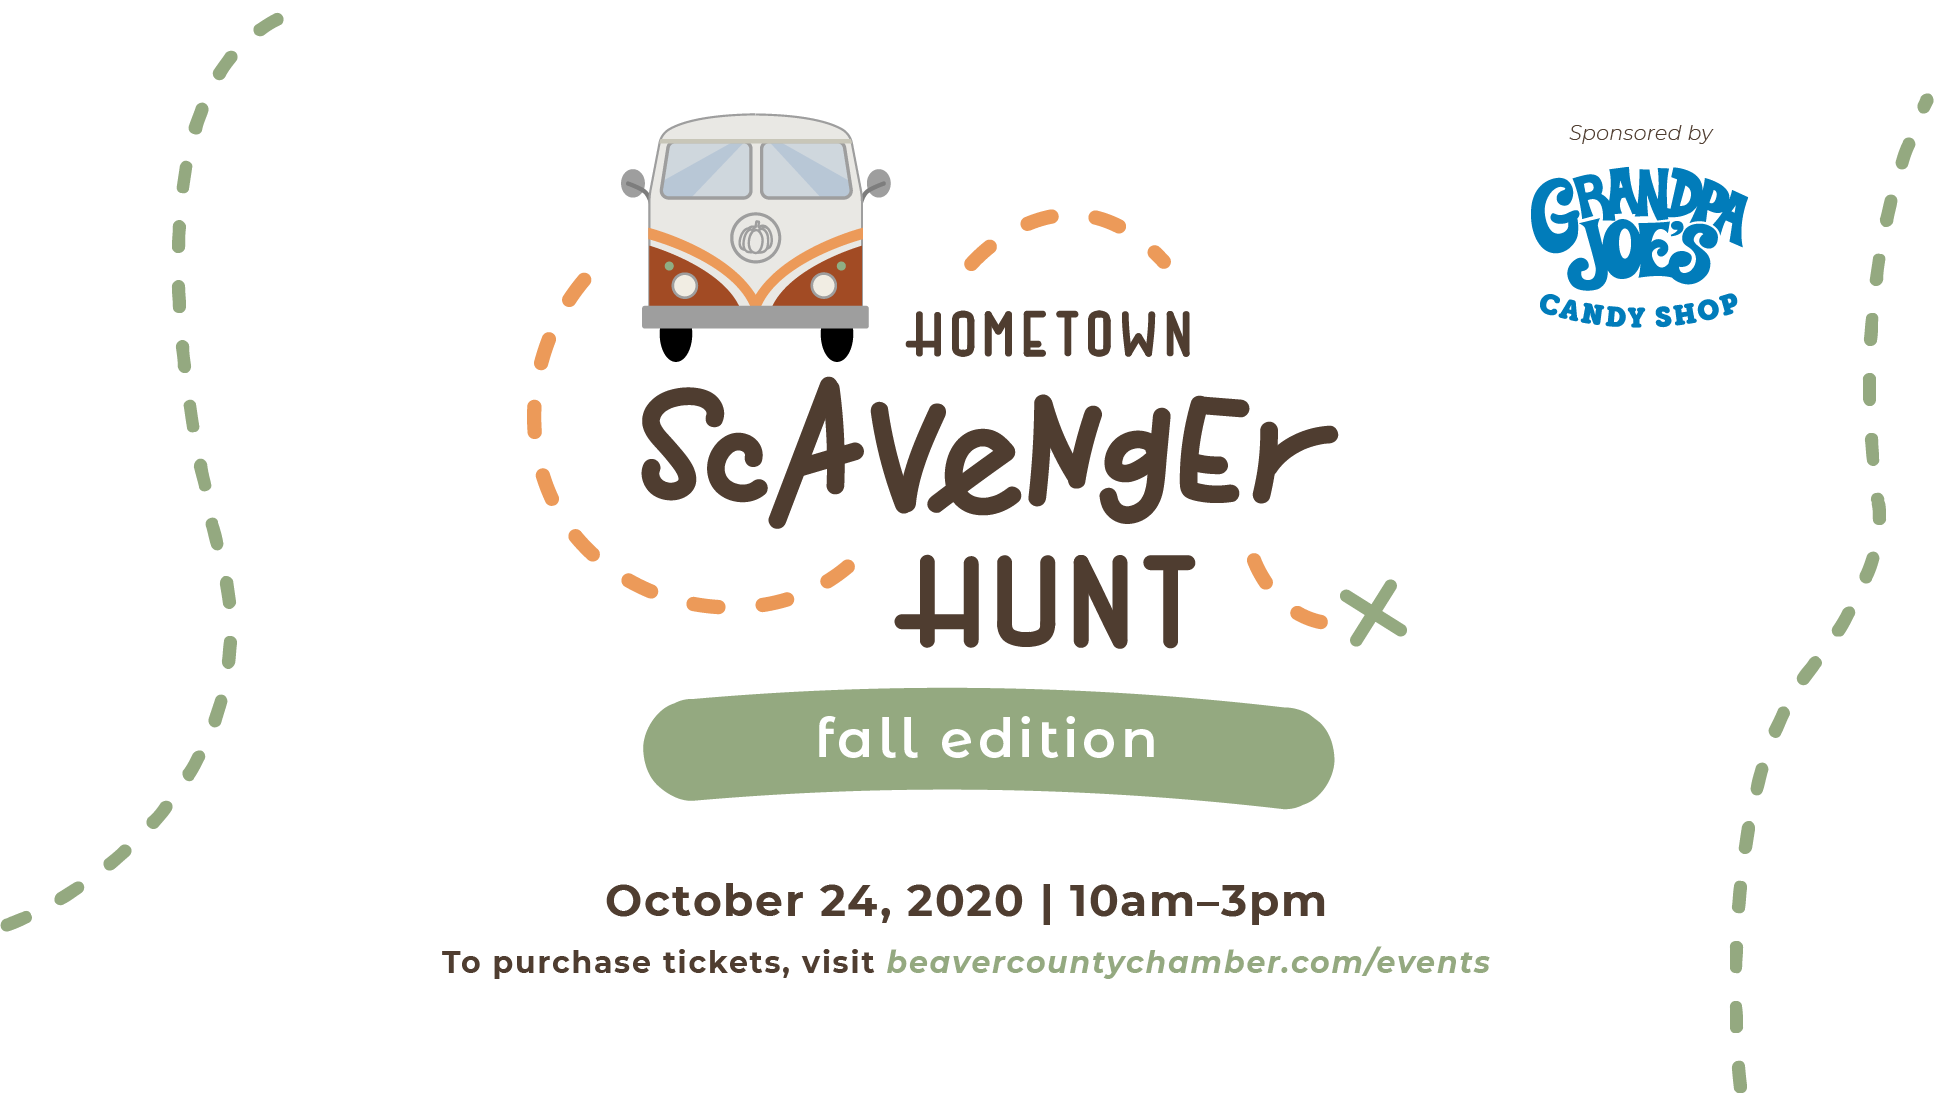 Hometown Scavenger Hunt - Fall Edition